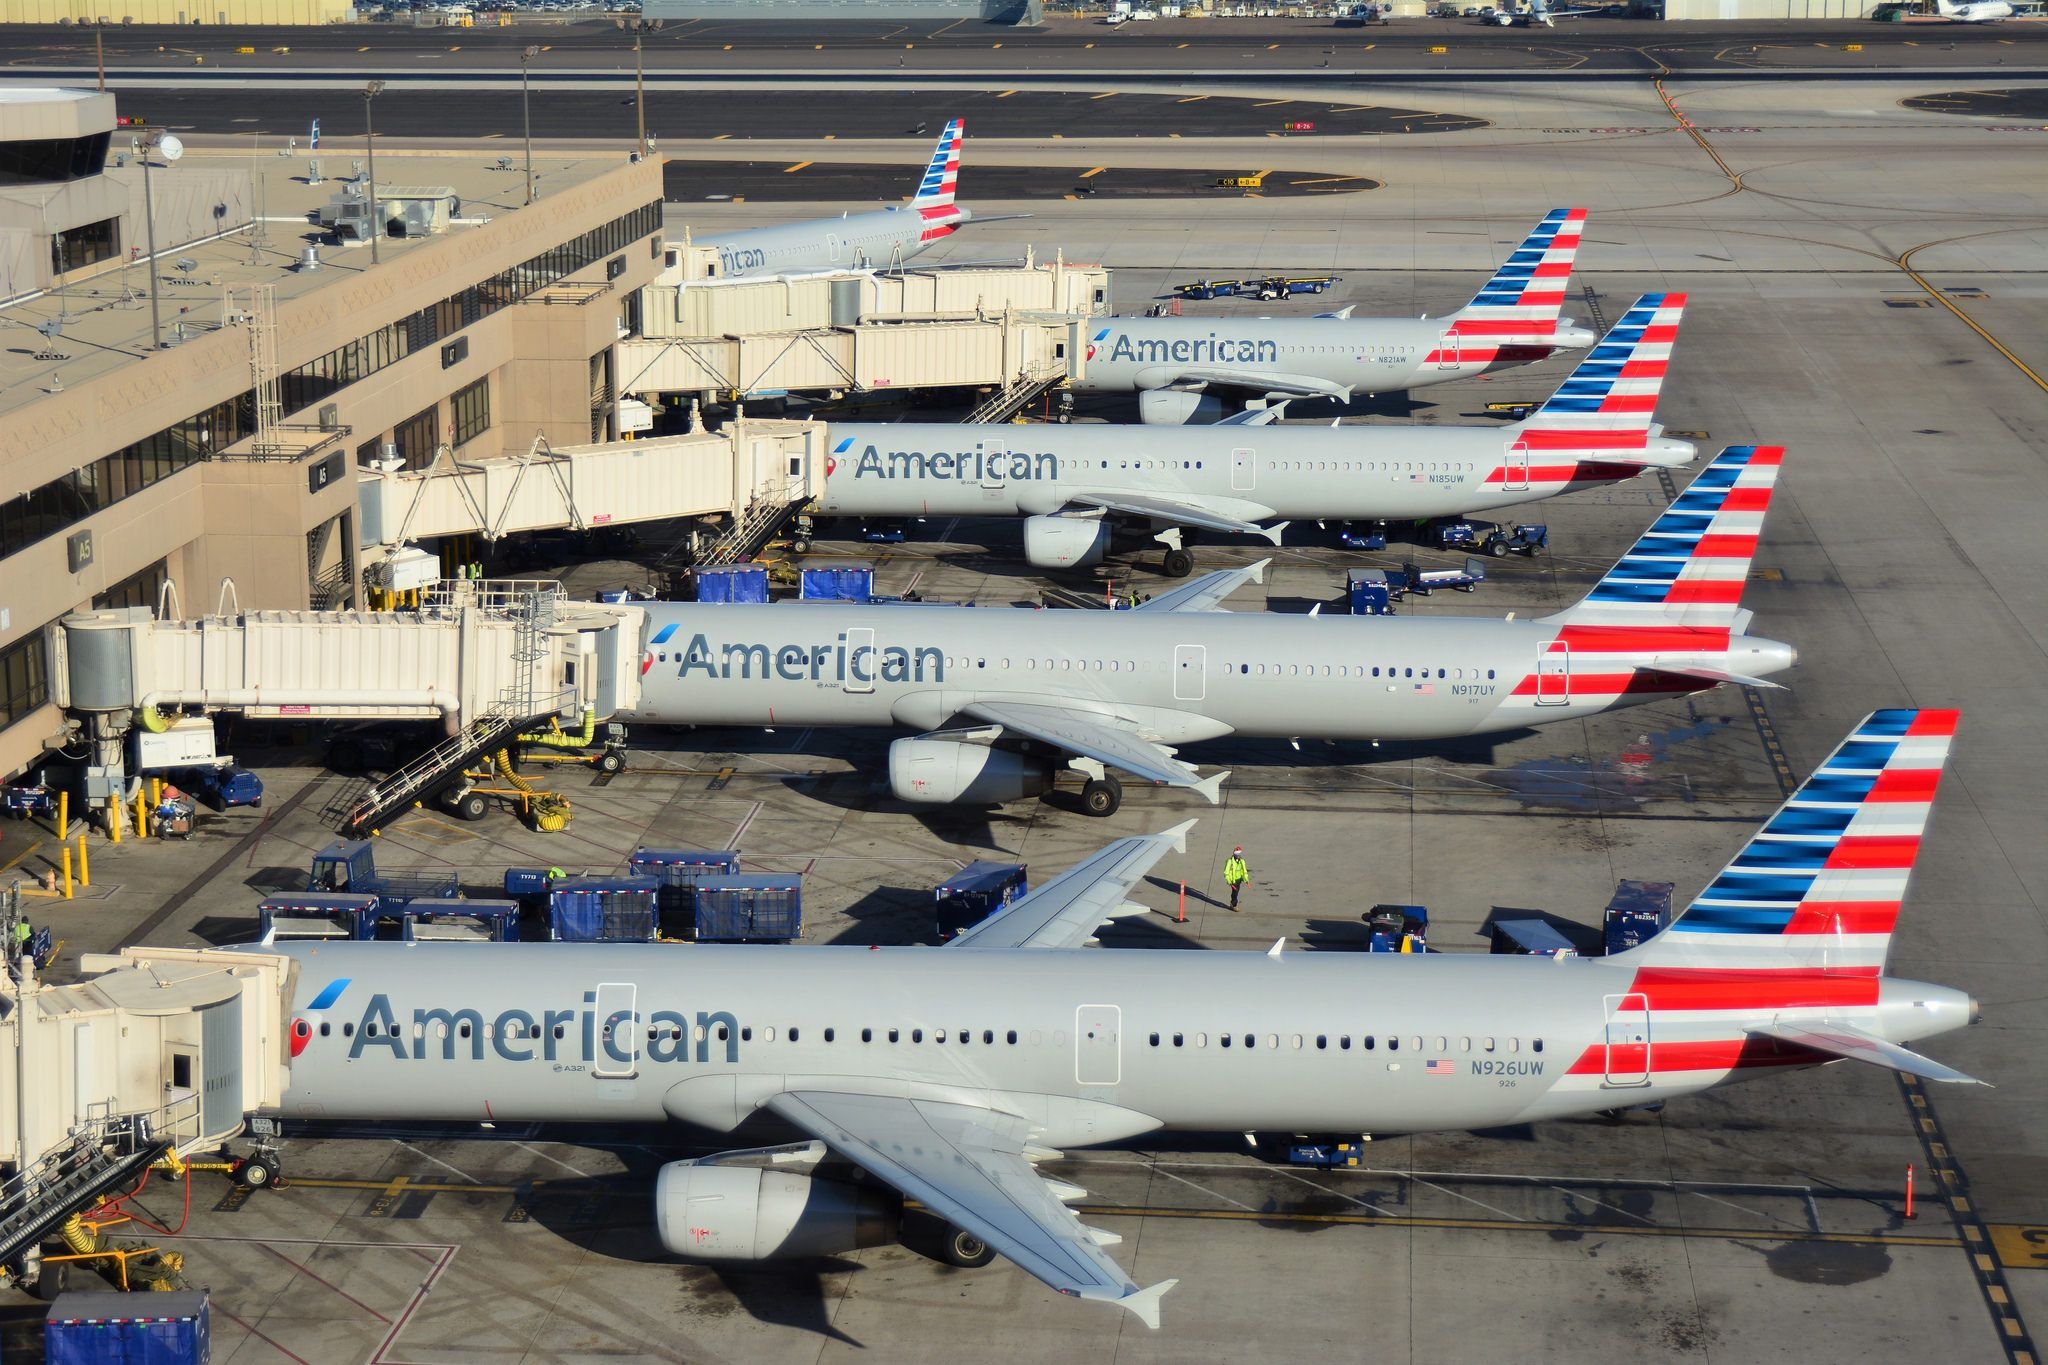 American Airlines Airbus Aircraft Sitting At The Gate At